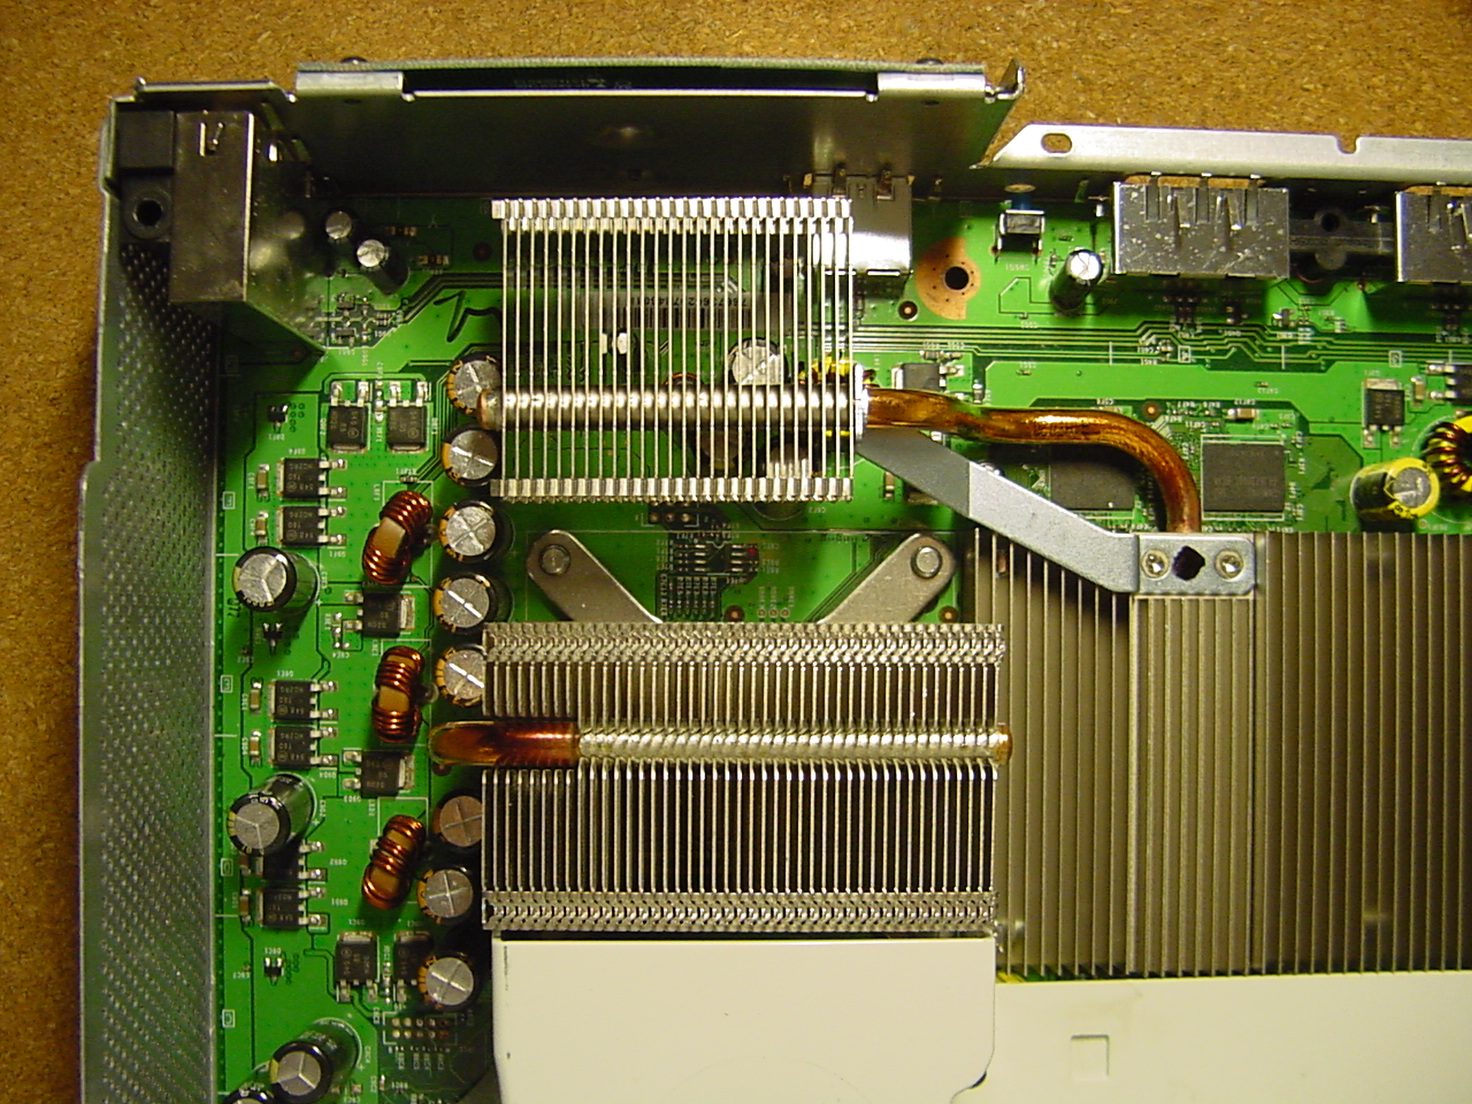 Heatsink Xbox 360 Slim Motherboard Pictures